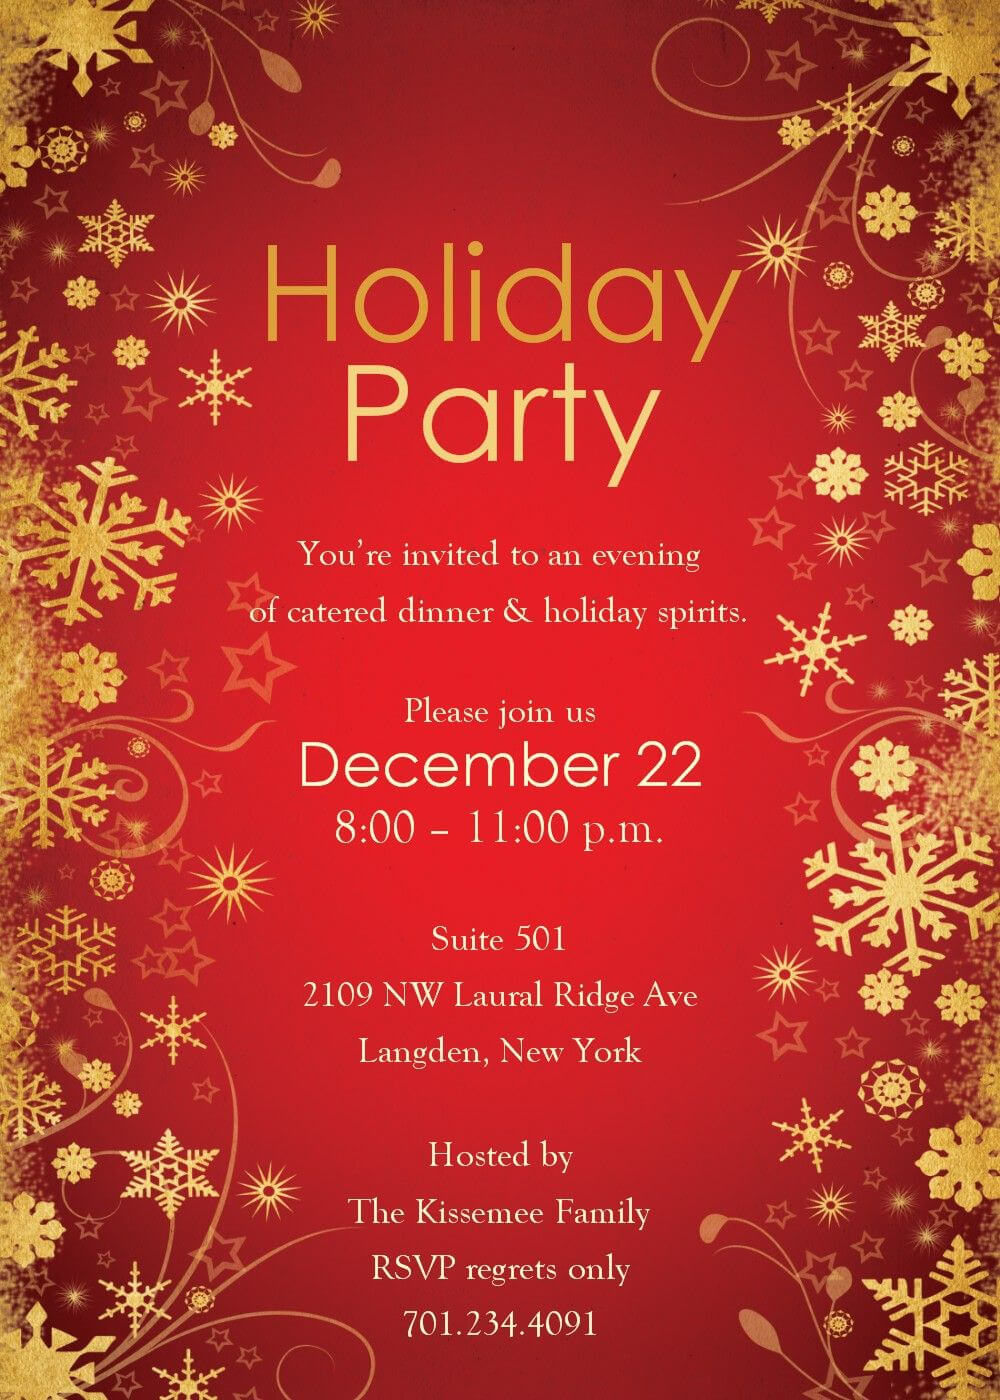 Christmas Party Invitations Templates Word | Christmas Party With Free Christmas Invitation Templates For Word